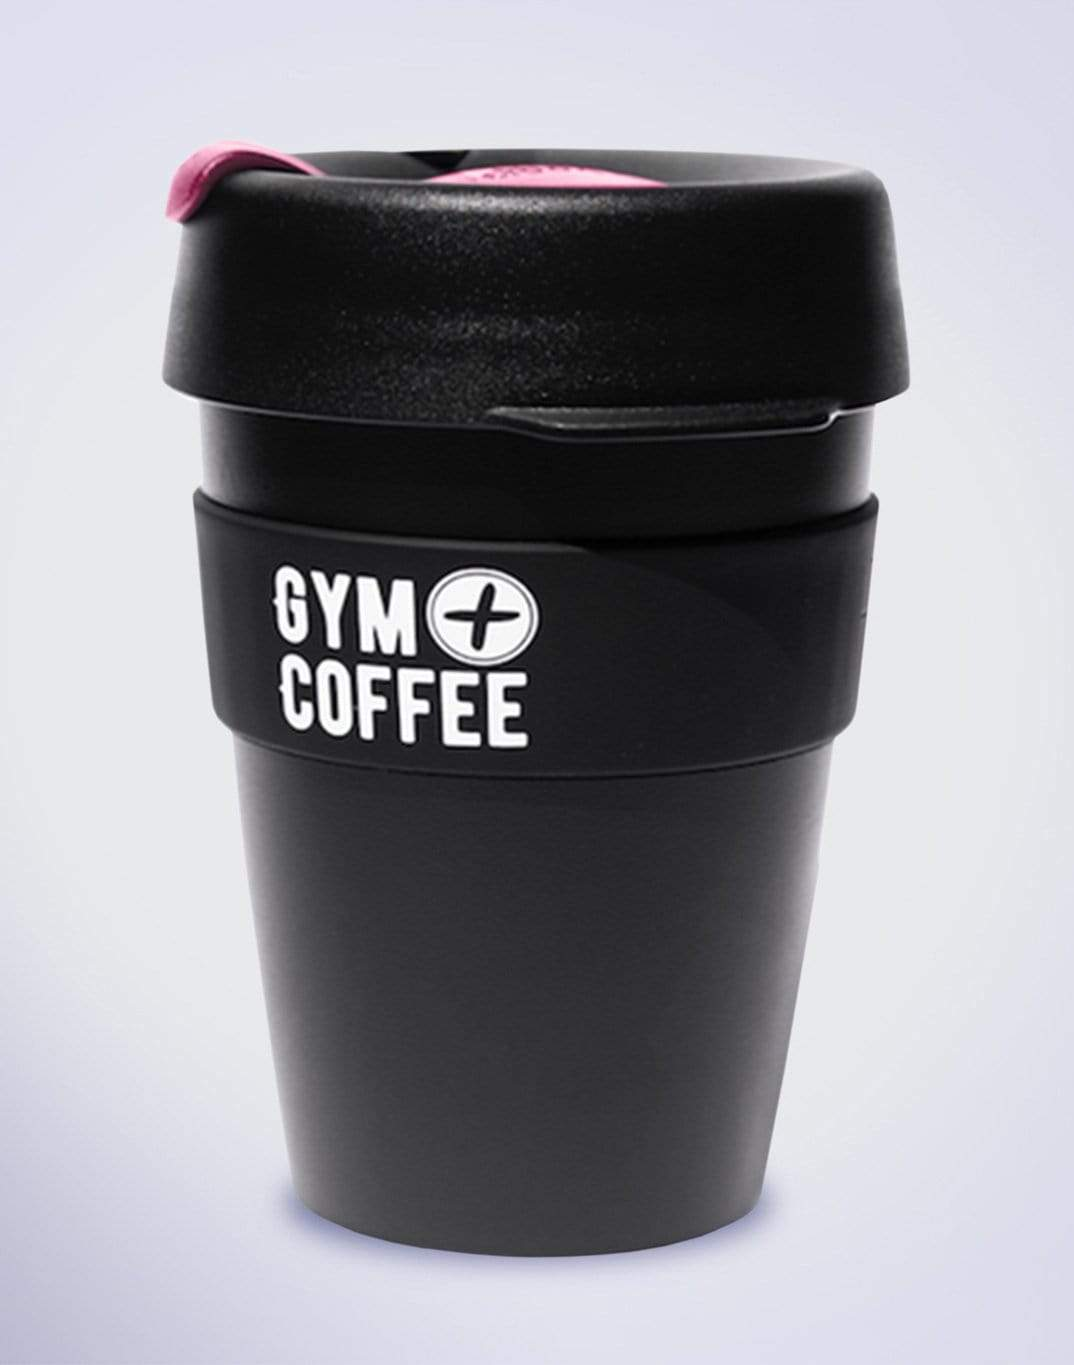 Gym Plus Coffee KeepCup Black/Pink KeepCup Medium Designed in Ireland